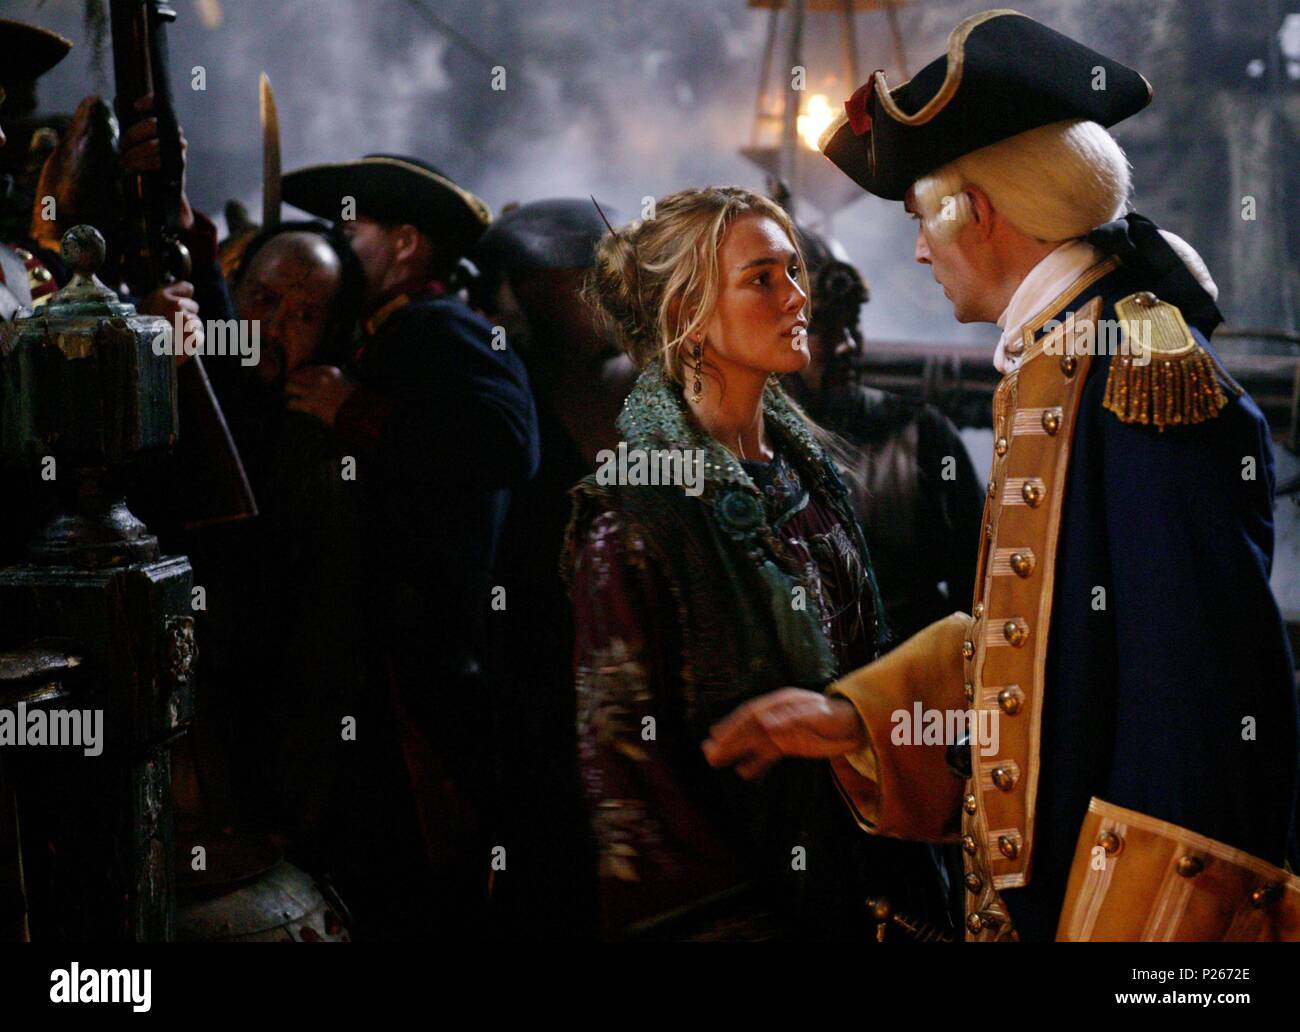 Original Film Title: PIRATES OF THE CARIBBEAN: AT WORLDS END.  English Title: PIRATES OF THE CARIBBEAN: AT WORLDS END.  Film Director: GORE VERBINSKI.  Year: 2007.  Stars: JACK DAVENPORT; KEIRA KNIGHTLEY. Credit: WALT DISNEY PICTURES / MOUNTAIN, PETER / Album - Stock Image